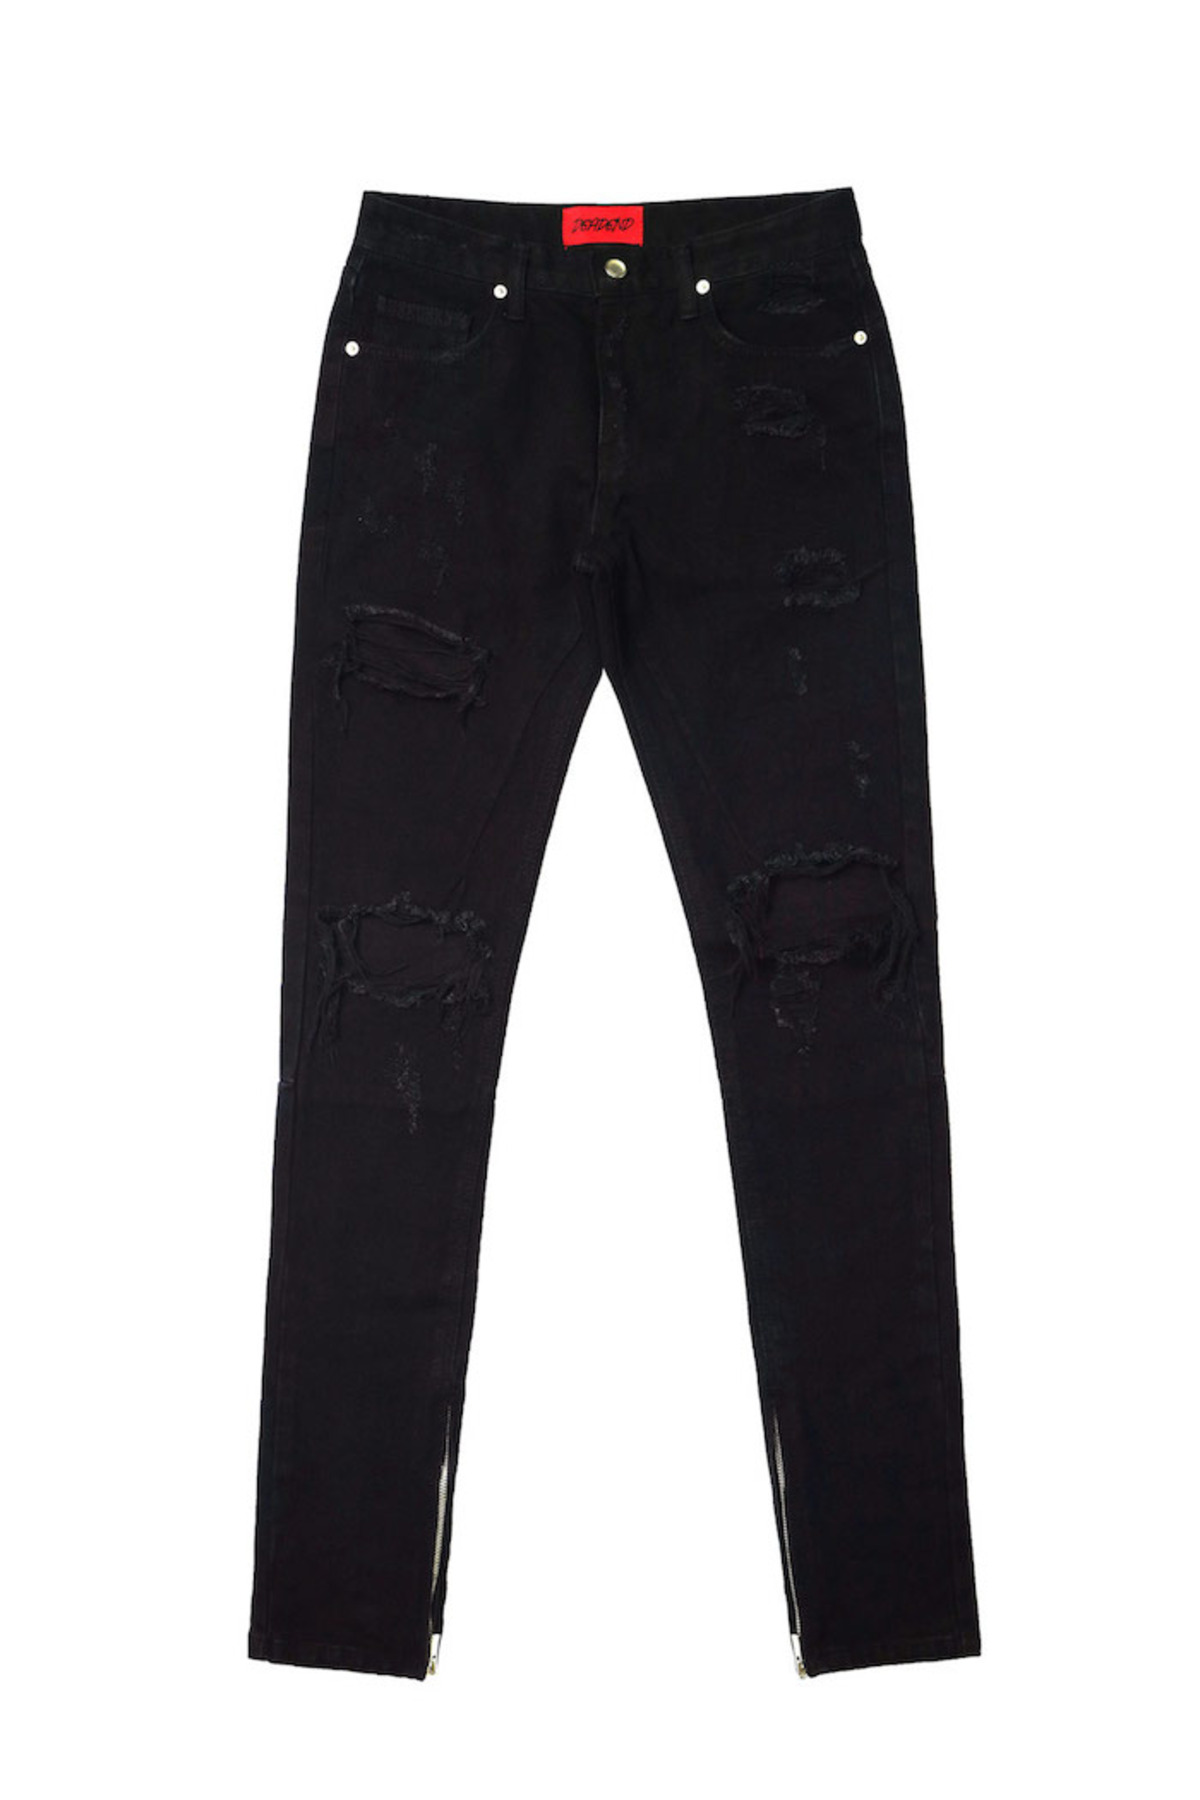 BLACK DESTROYED ZIPPER DENIM JEANS